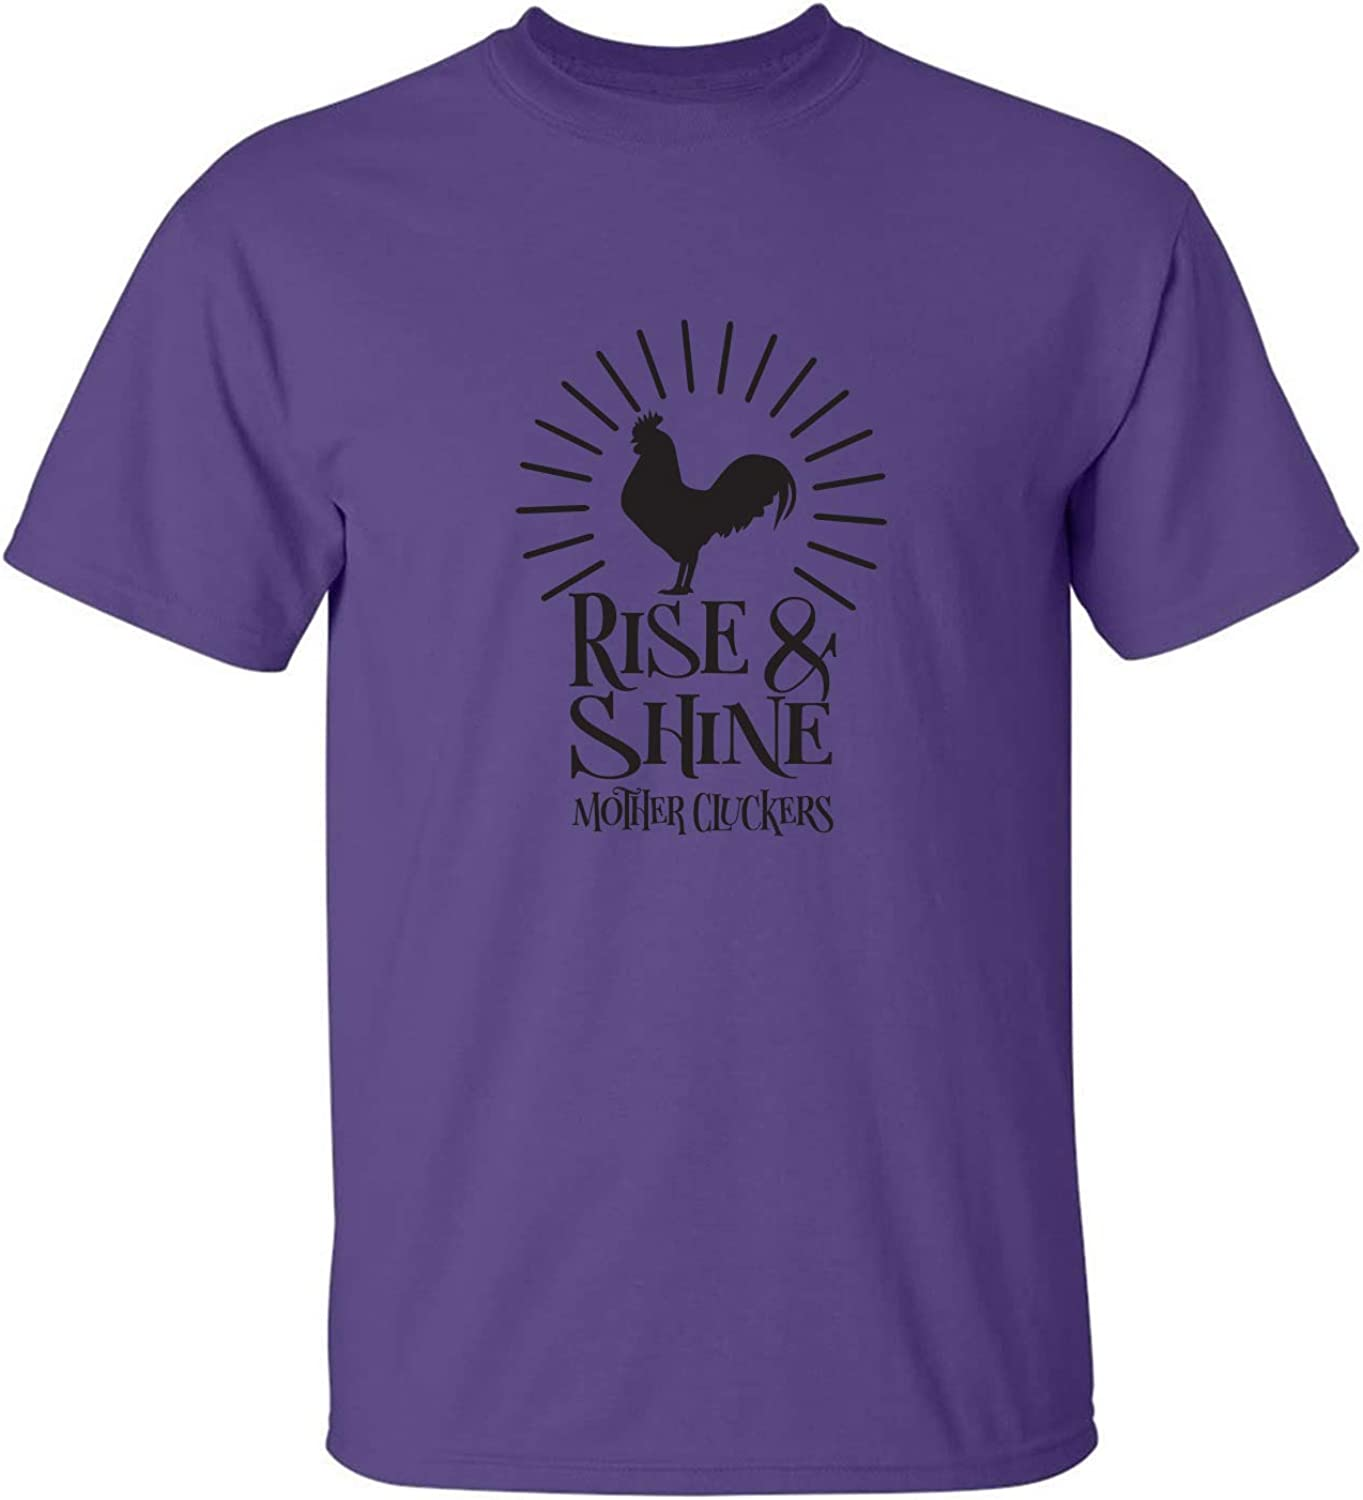 Rise & Shine Mother Cluckers Adult Short Sleeve T-Shirt